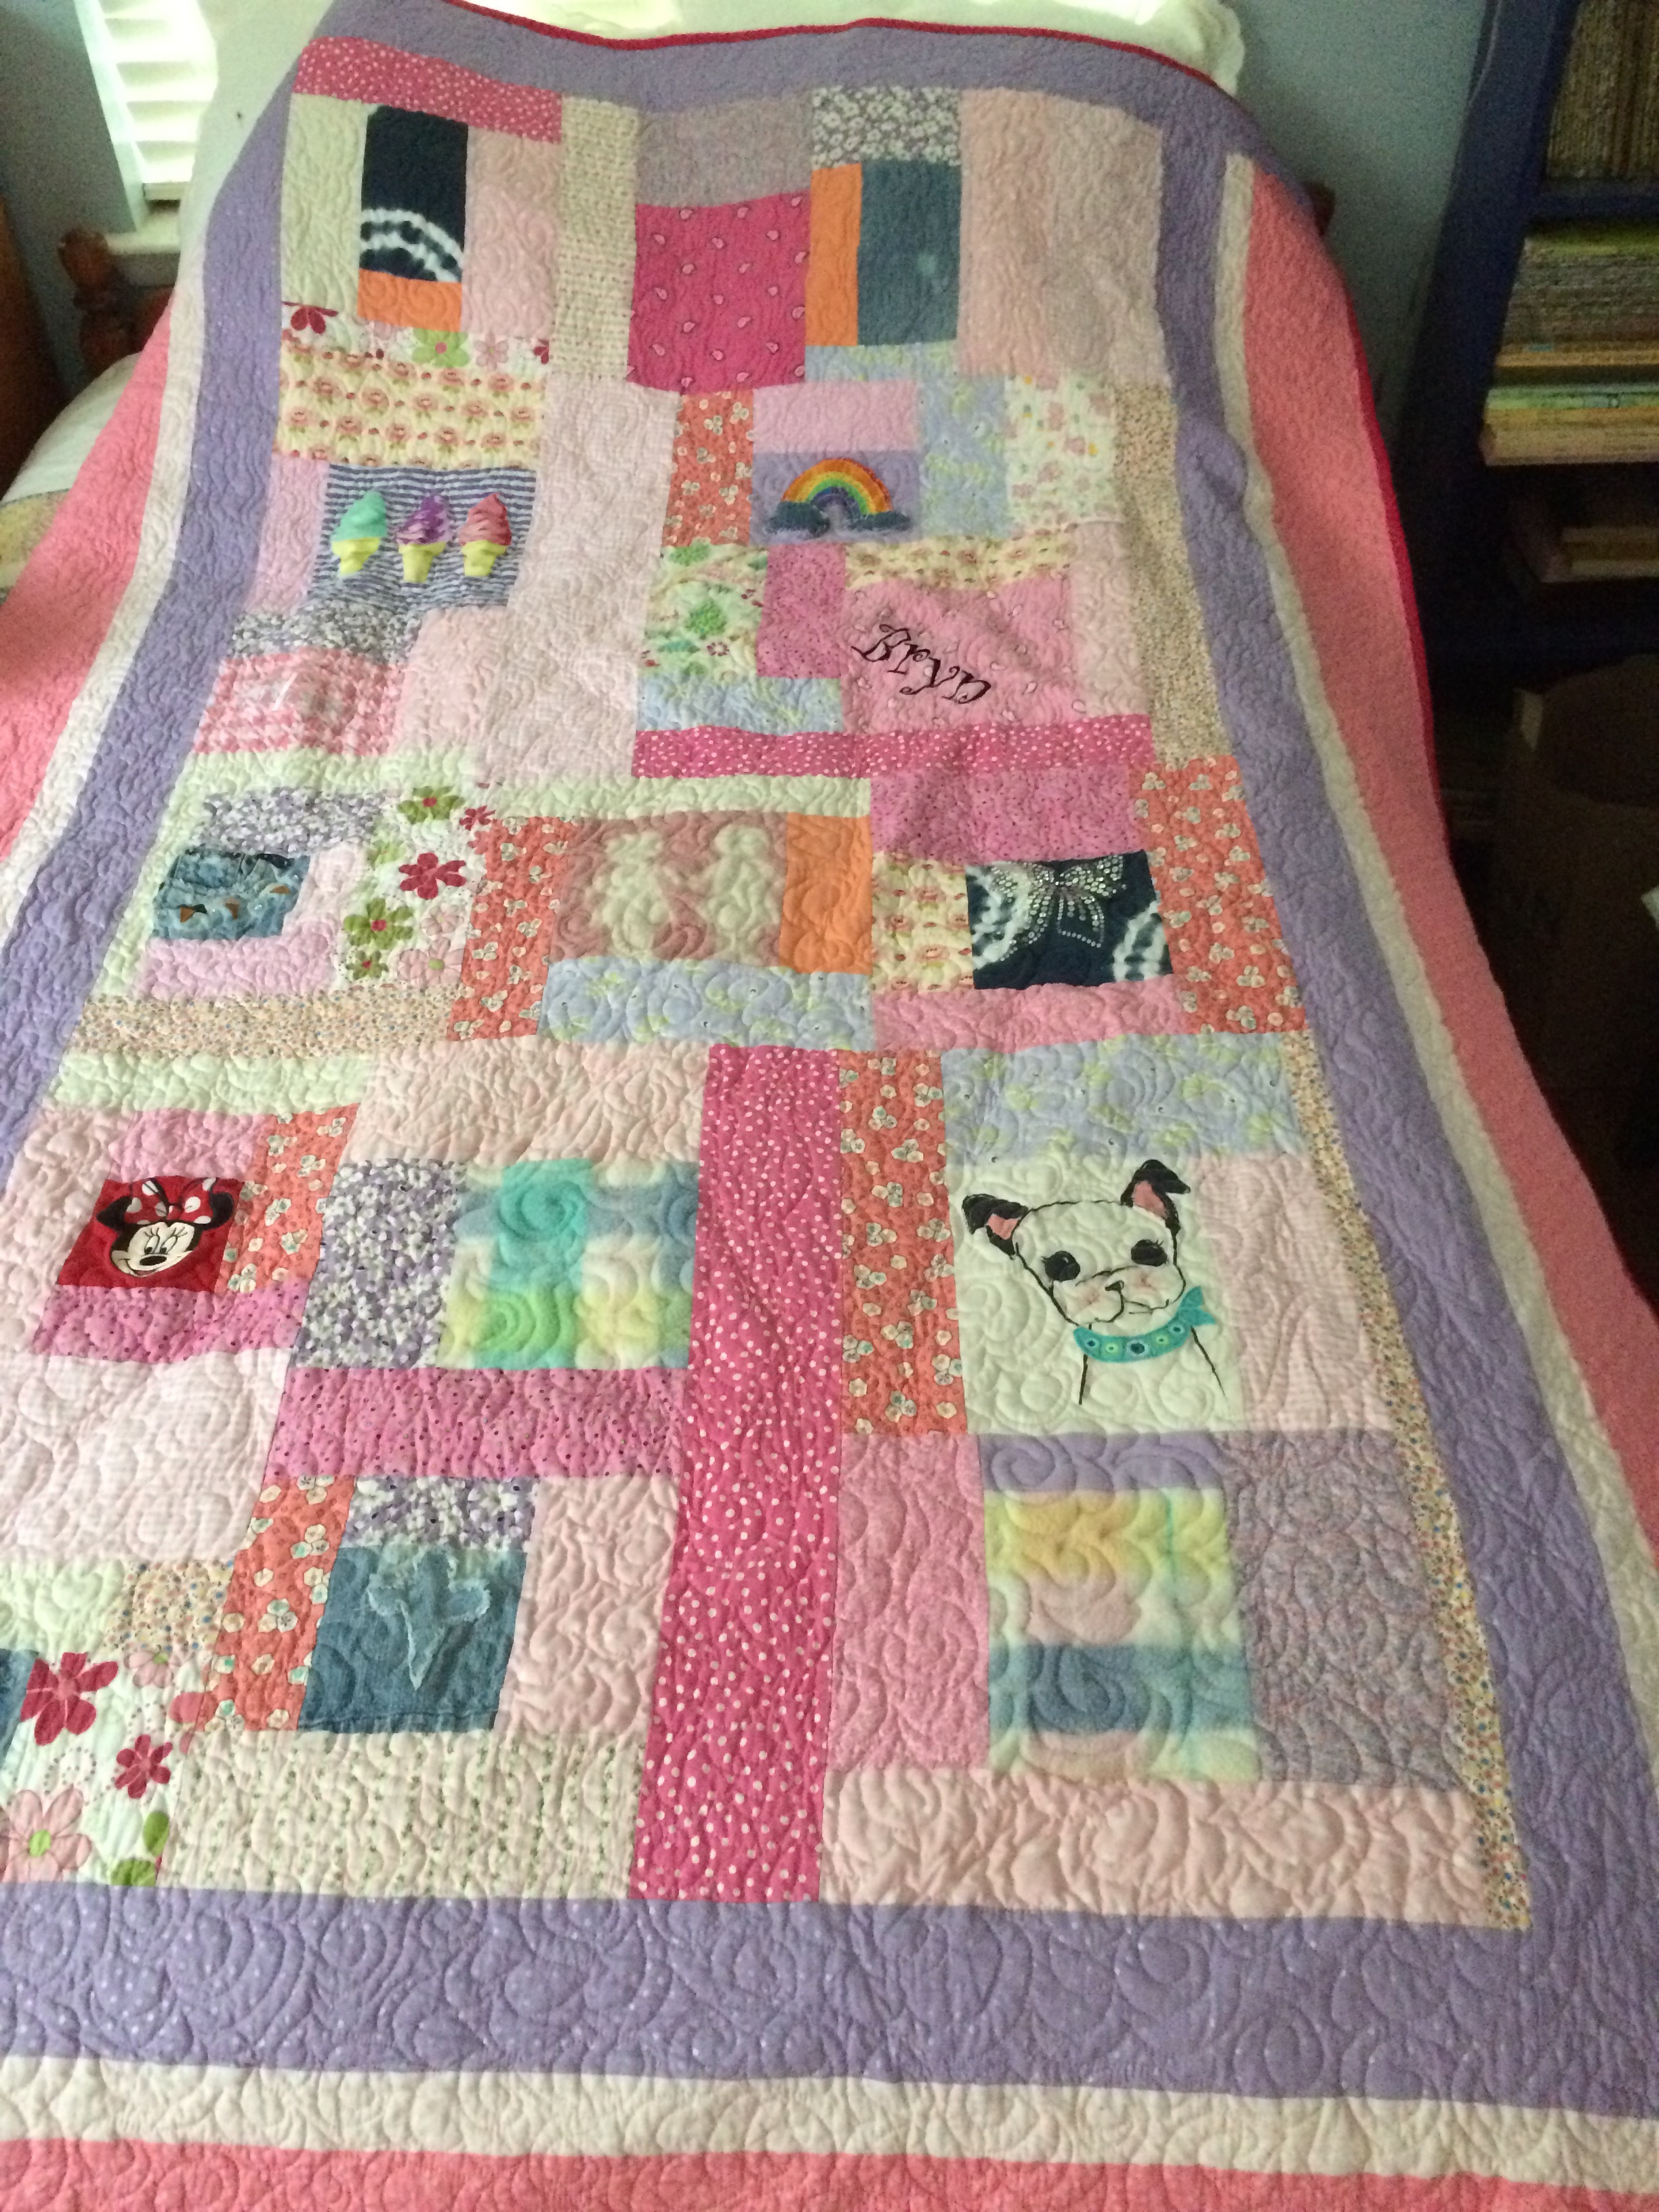 Quilt made for a reality TV star Bethenny Frankel's daughter Bryn.